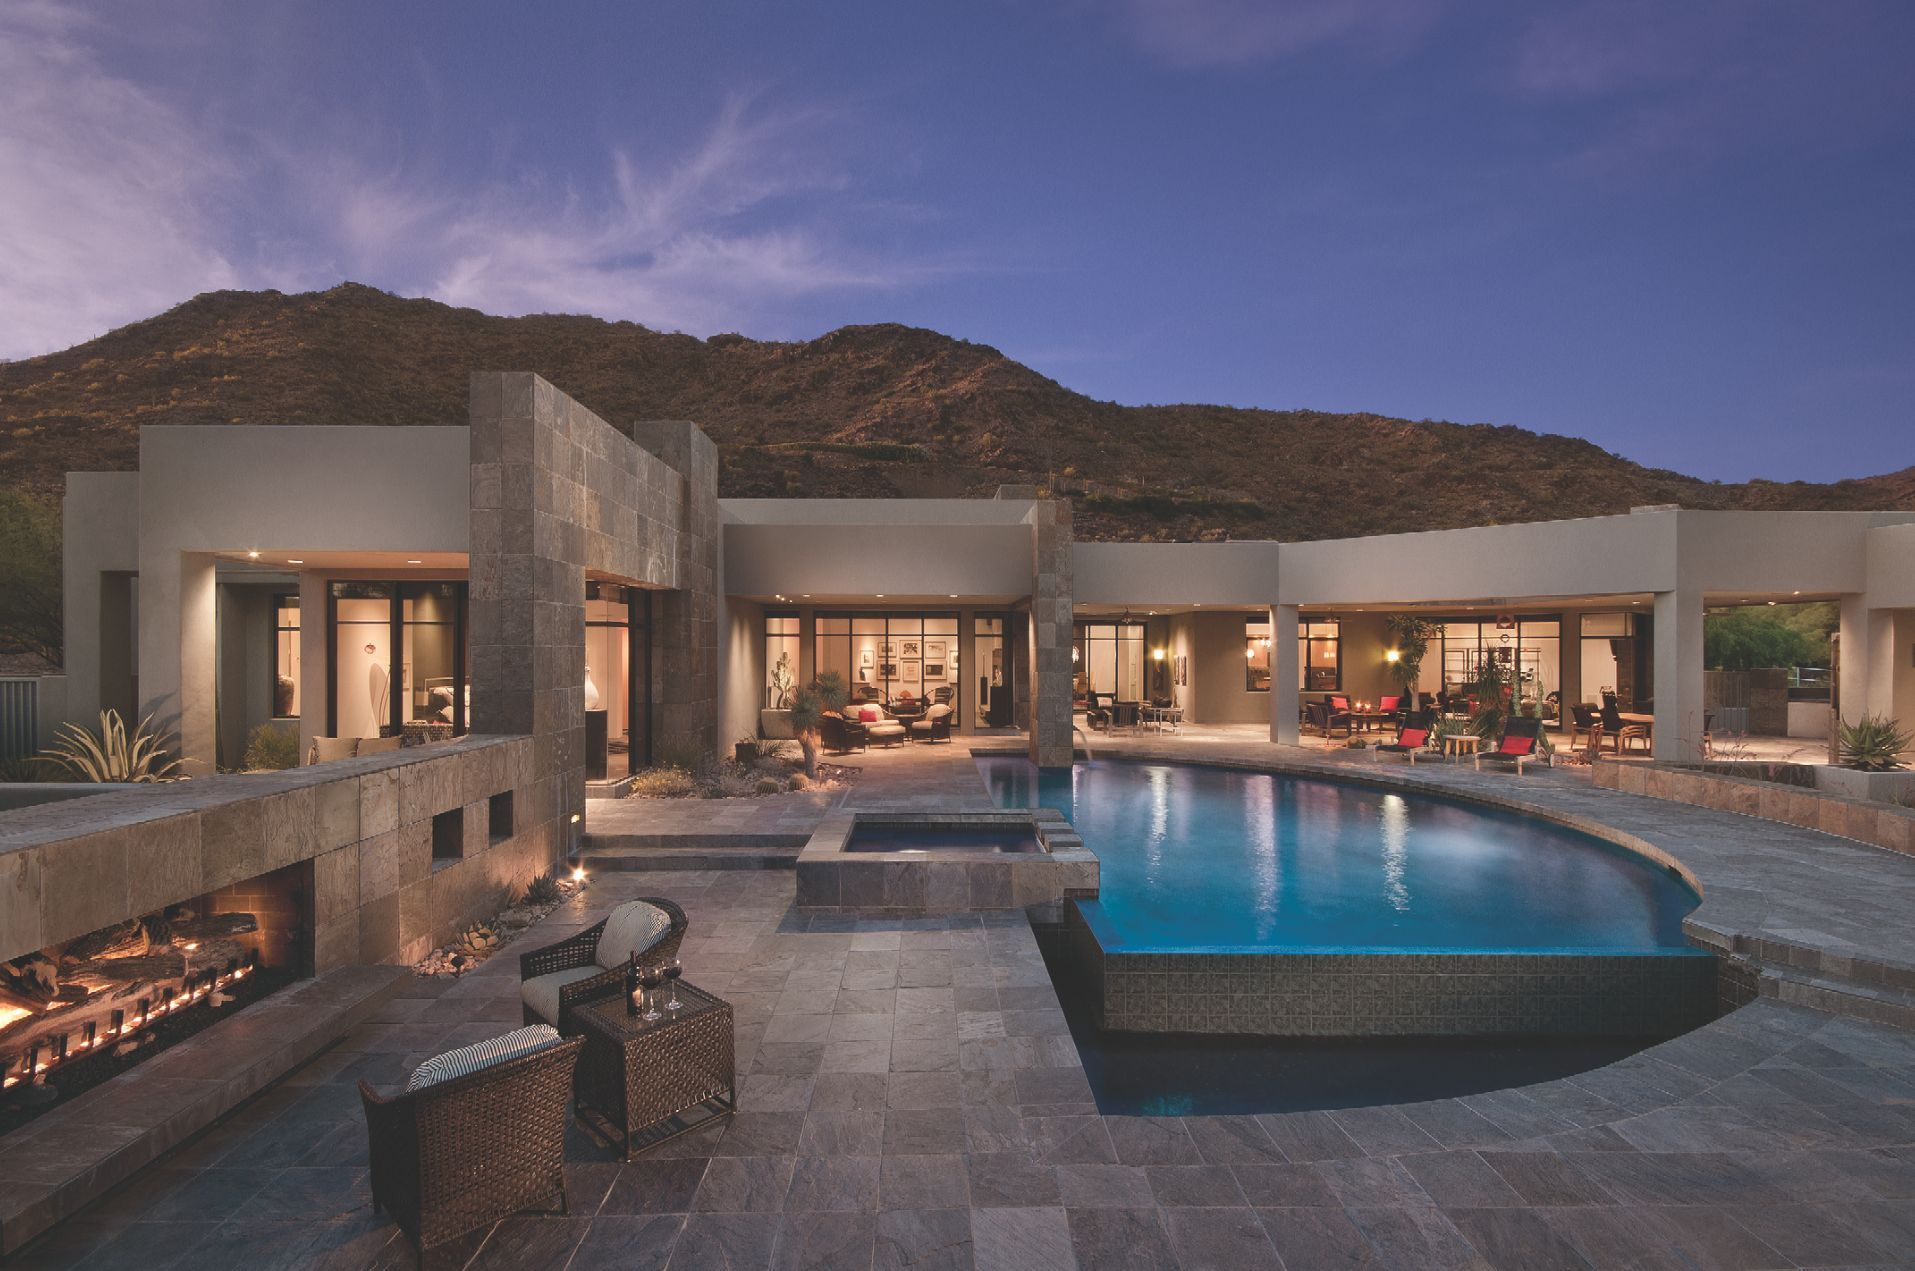 Mountain home with a pool in Arizona Santa Fe style outdoor